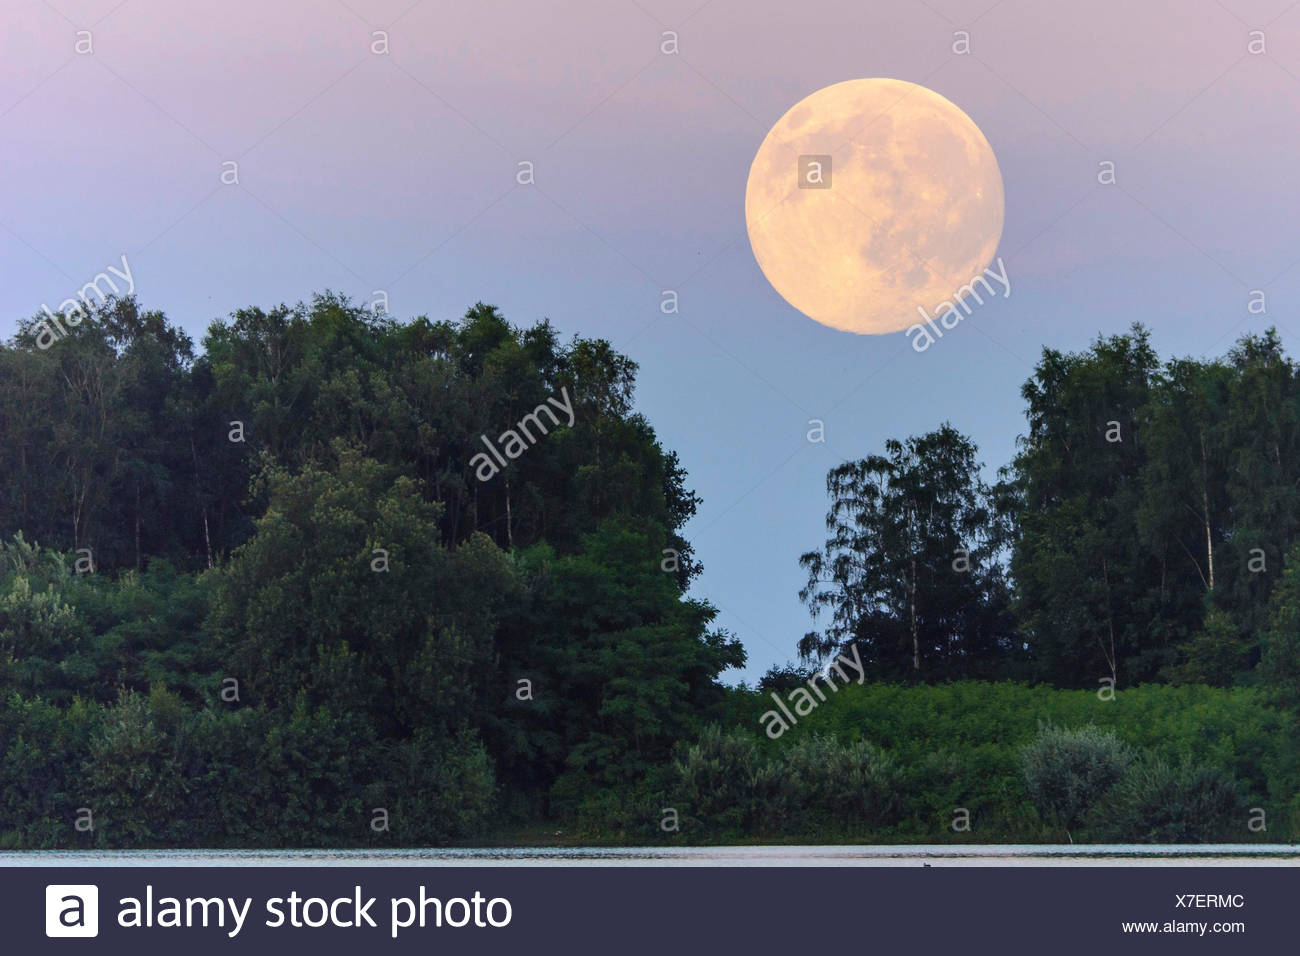 Vollmond ueber dem Dammer Bergsee, Deutschland, Niedersachsen, Damme | full moon over forest, Germany, Lower Saxony, Damme | BLW - Stock Image